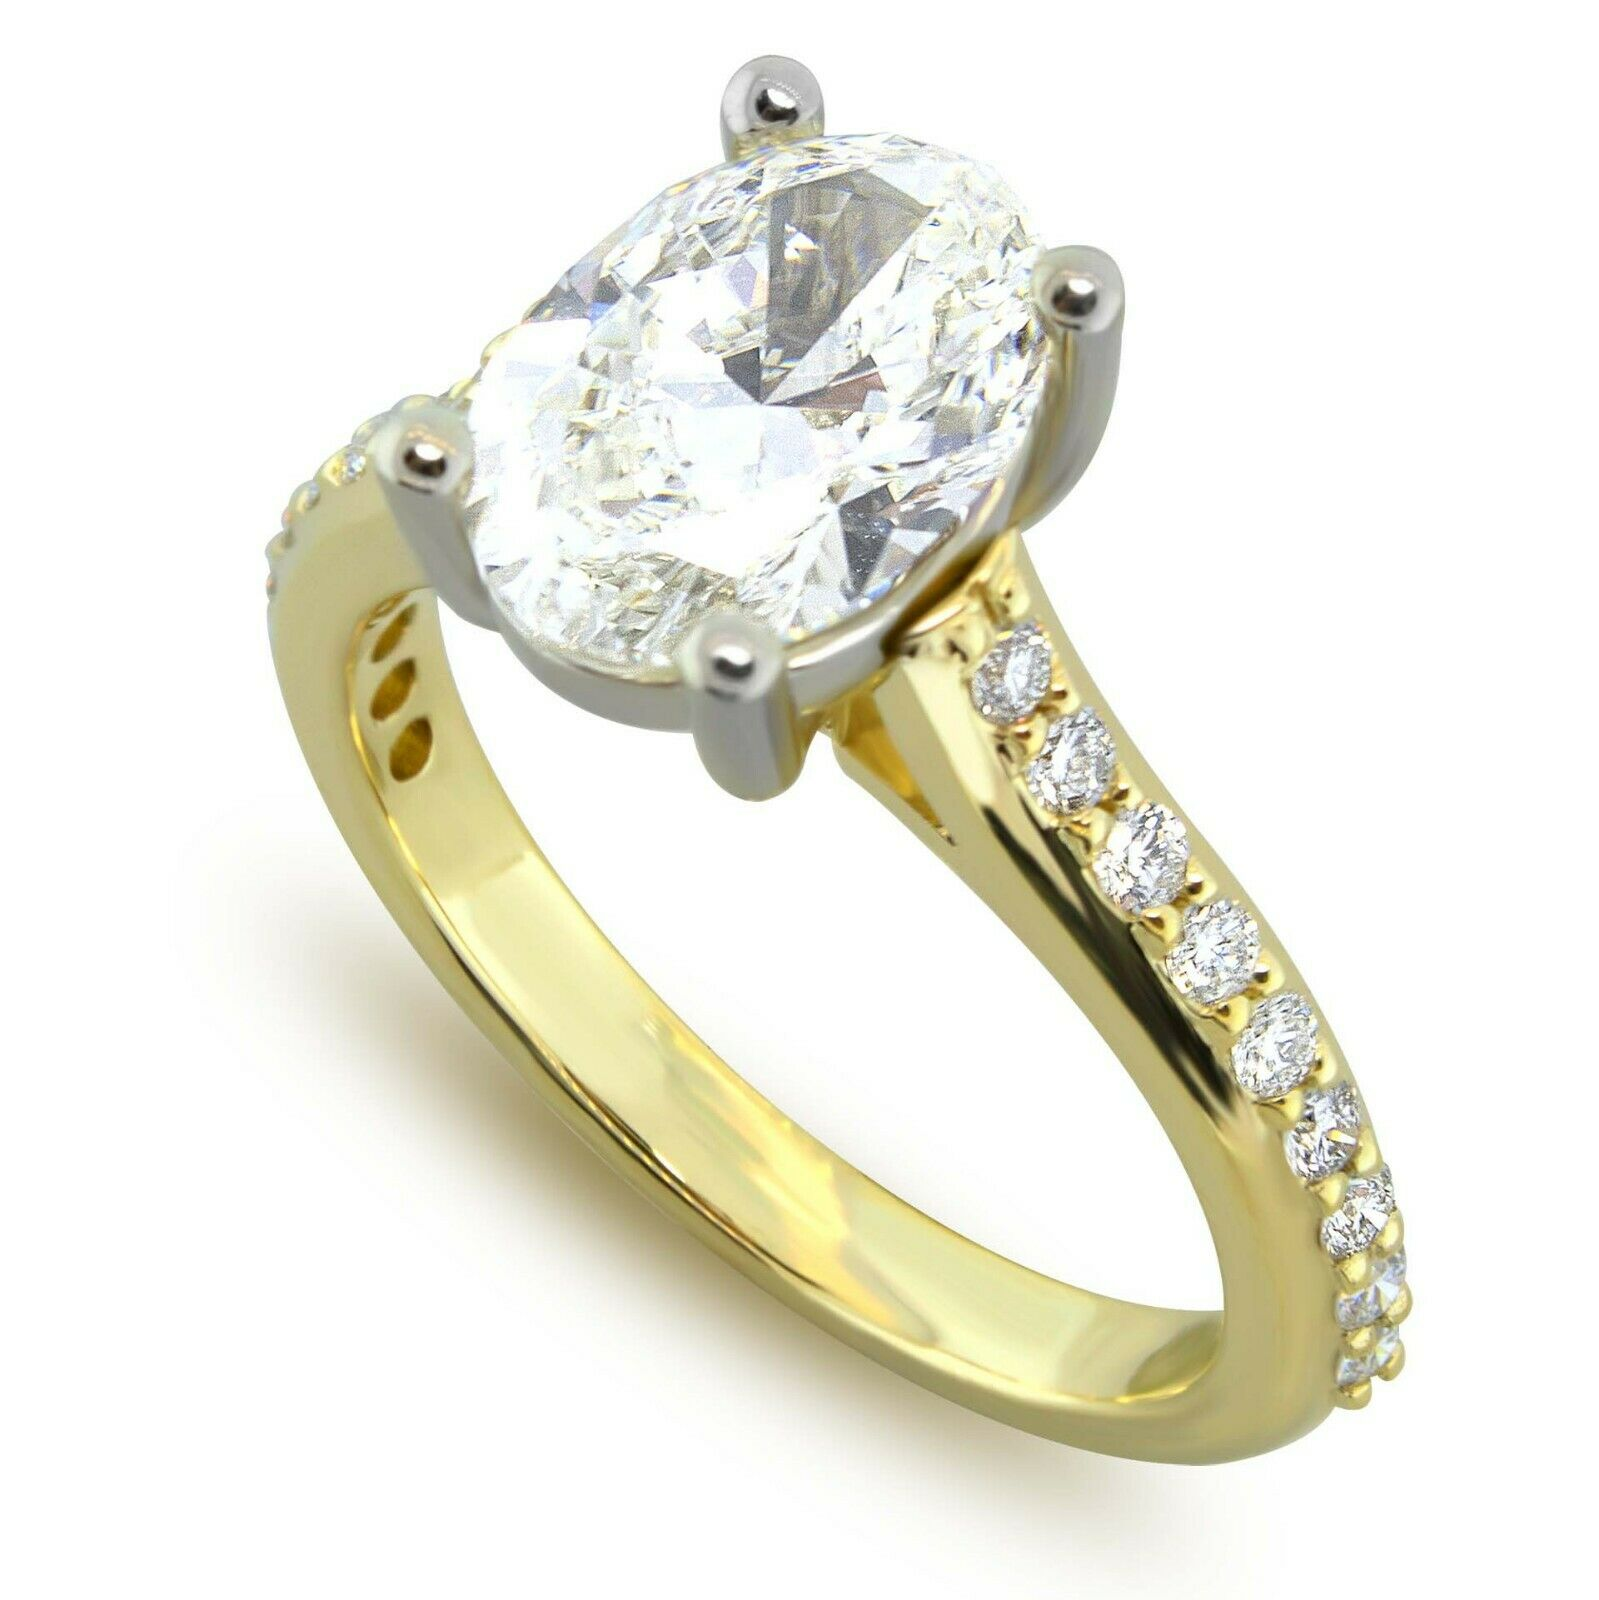 1.45 Carats I-SI1 GIA cert. Oval Diamond Engagement Ring 14k Yellow & White Gold 1